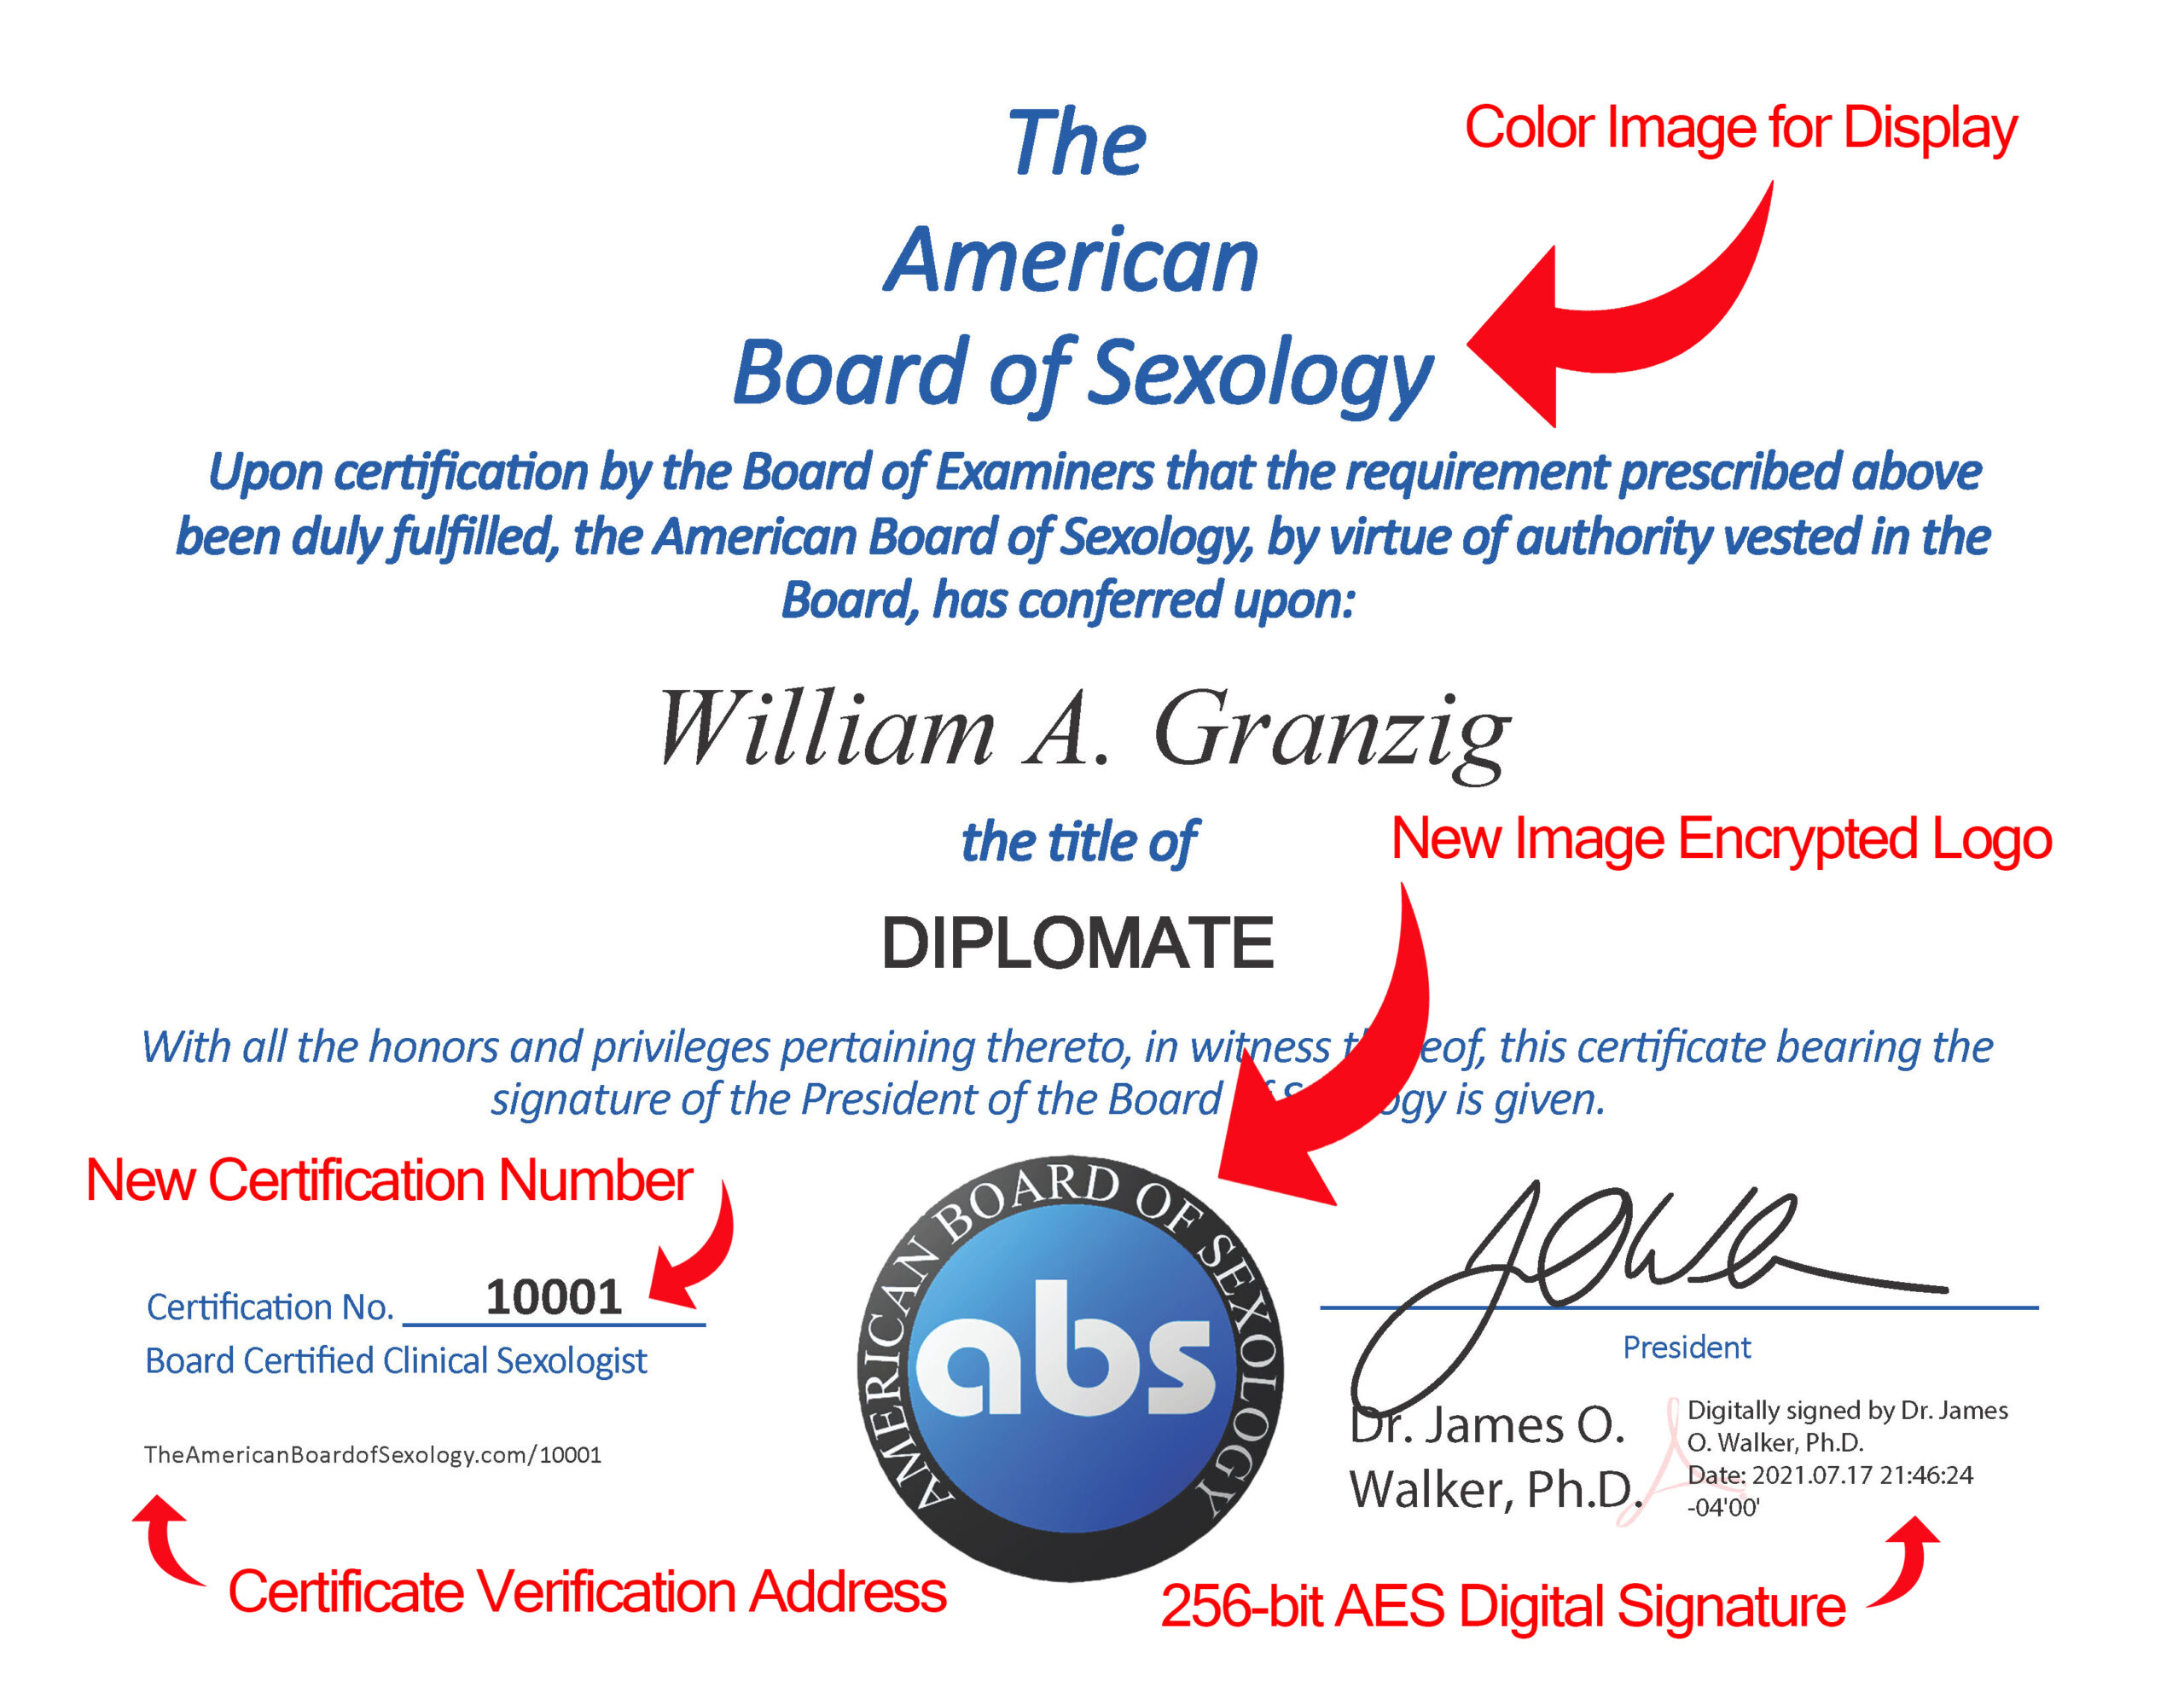 The NEW American Board of Sexology Diplomate Certificate explained